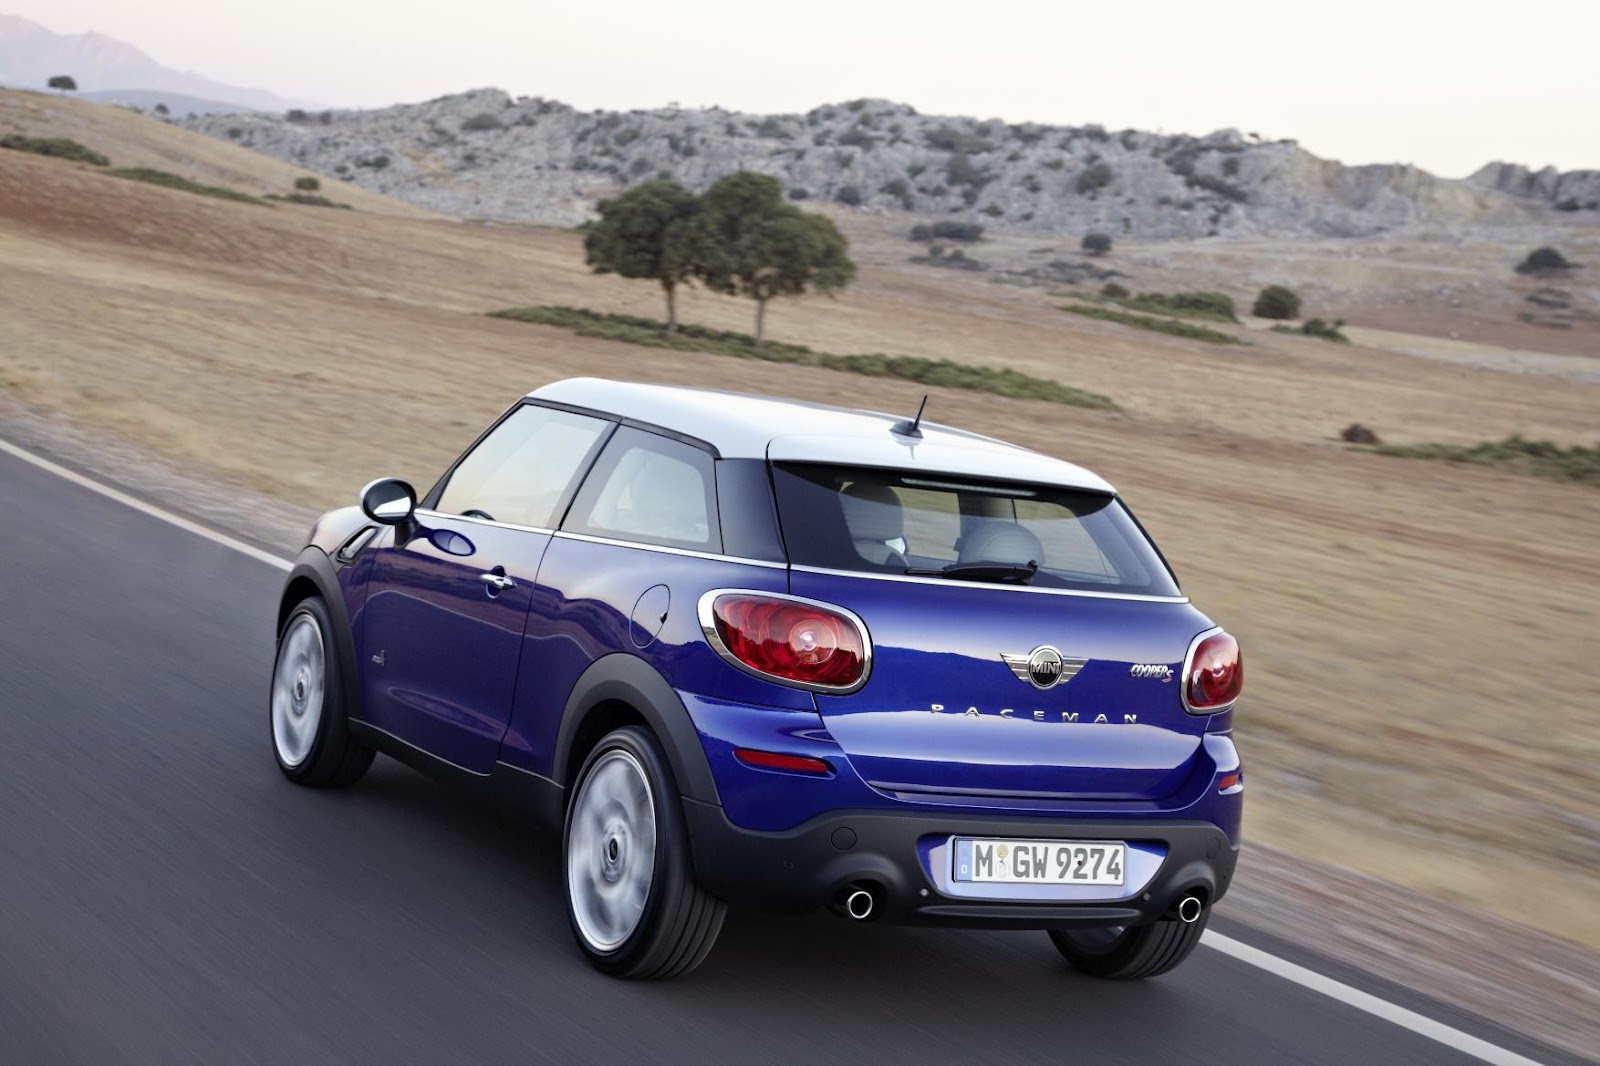 Mini Cooper S 16 High Petrol Car Review Specification Mileage